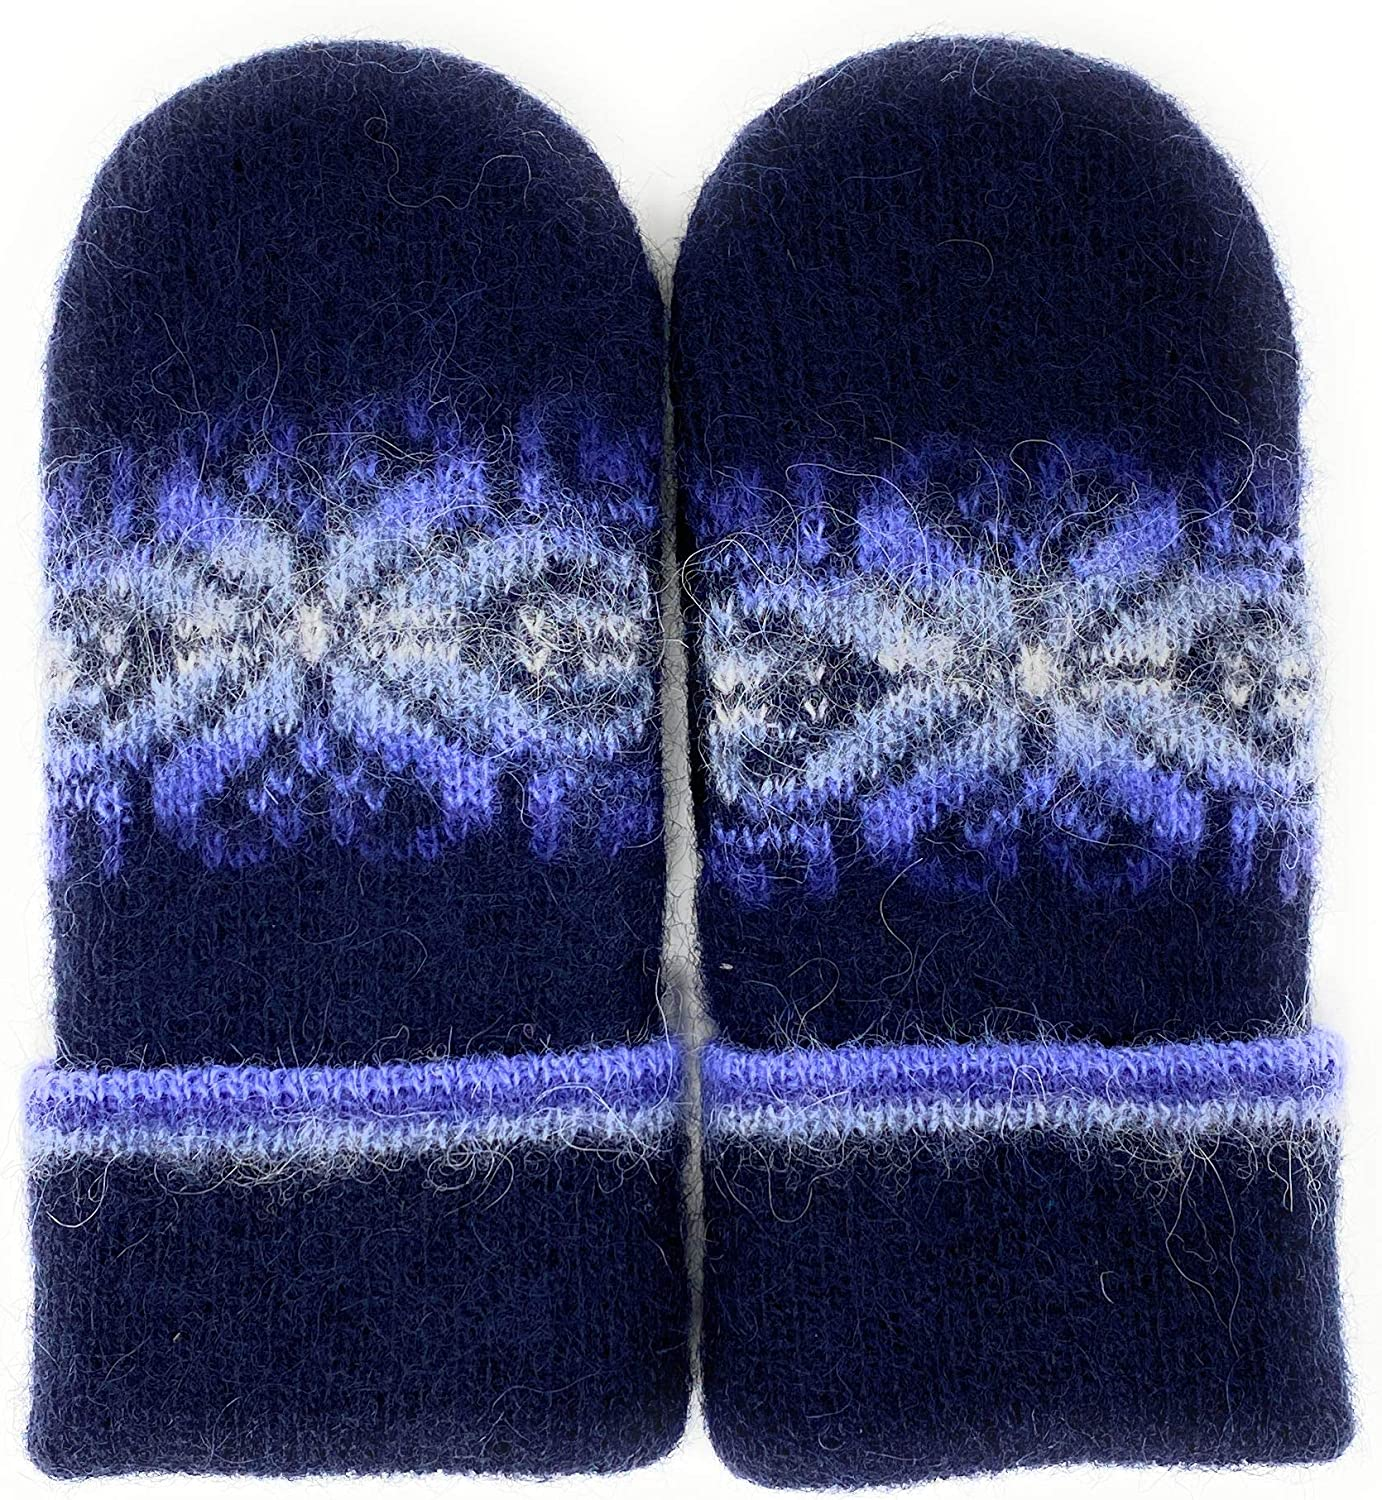 Wool Mittens for Women and Men with Fleece Lining Fingerless Made of 100% Icelandic Wool by Freyja Canada